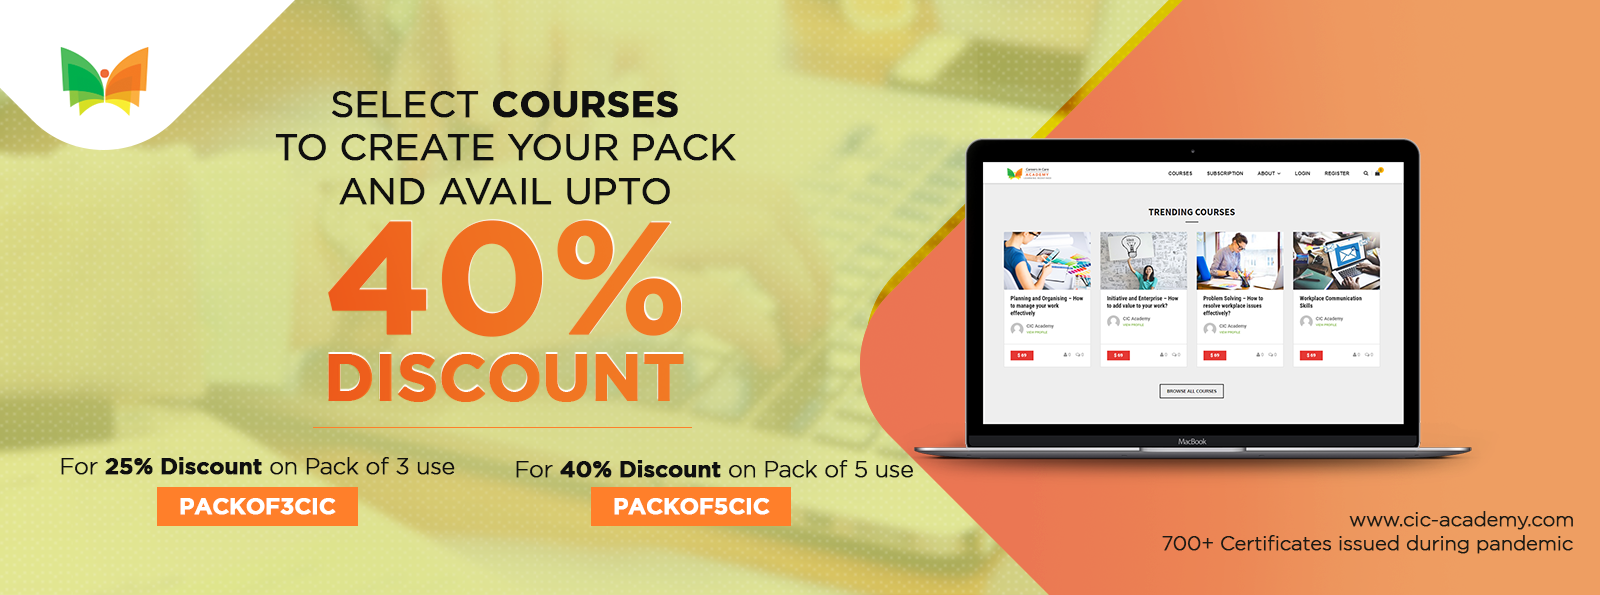 Courses Pack Offer